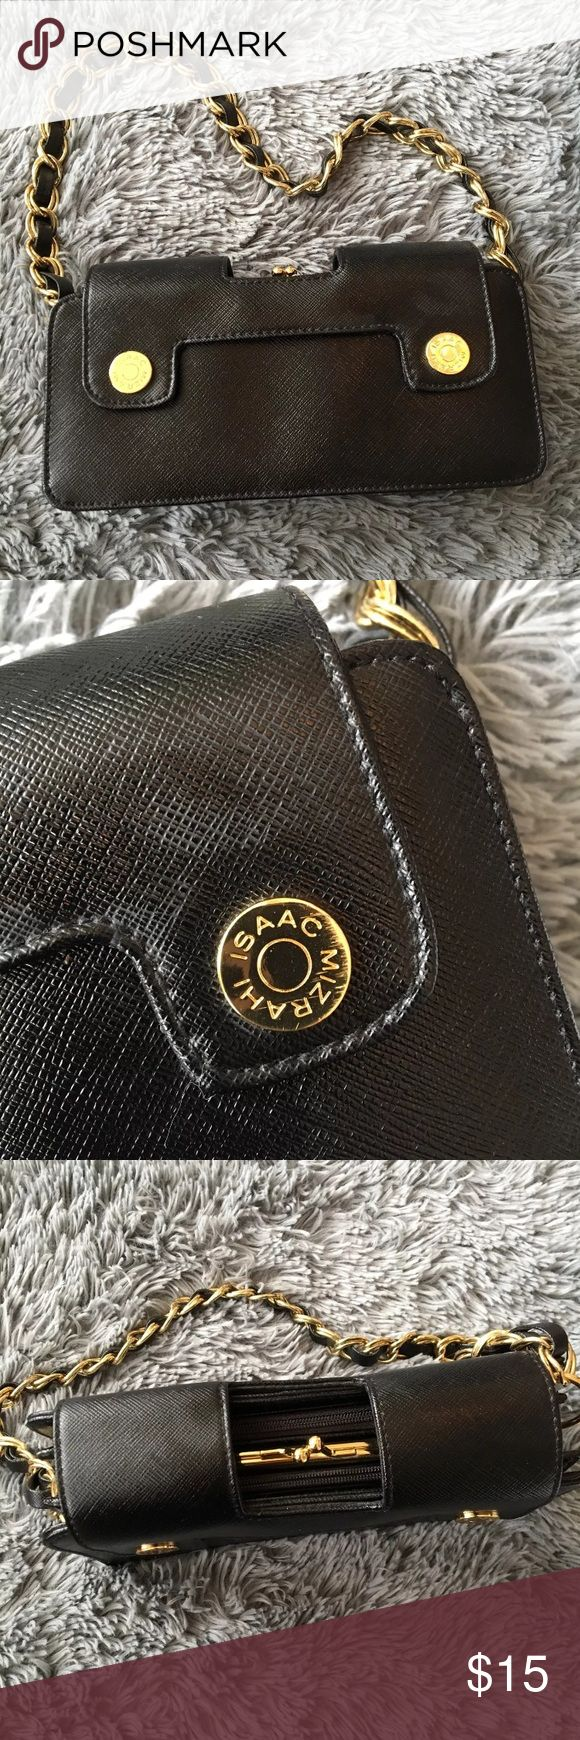 Issac Mizrahi target small black & gold clutch Super cute small issac Mizrahi for target purse. Perfect addition to a night out or a weekend away. Three compartments within the purse. Button closure and each compartment is either zipper or clasp. See photos for details. The gold emblem is slightly scuffed but not noticeable. Price firm Isaac Mizrahi Bags Clutches & Wristlets